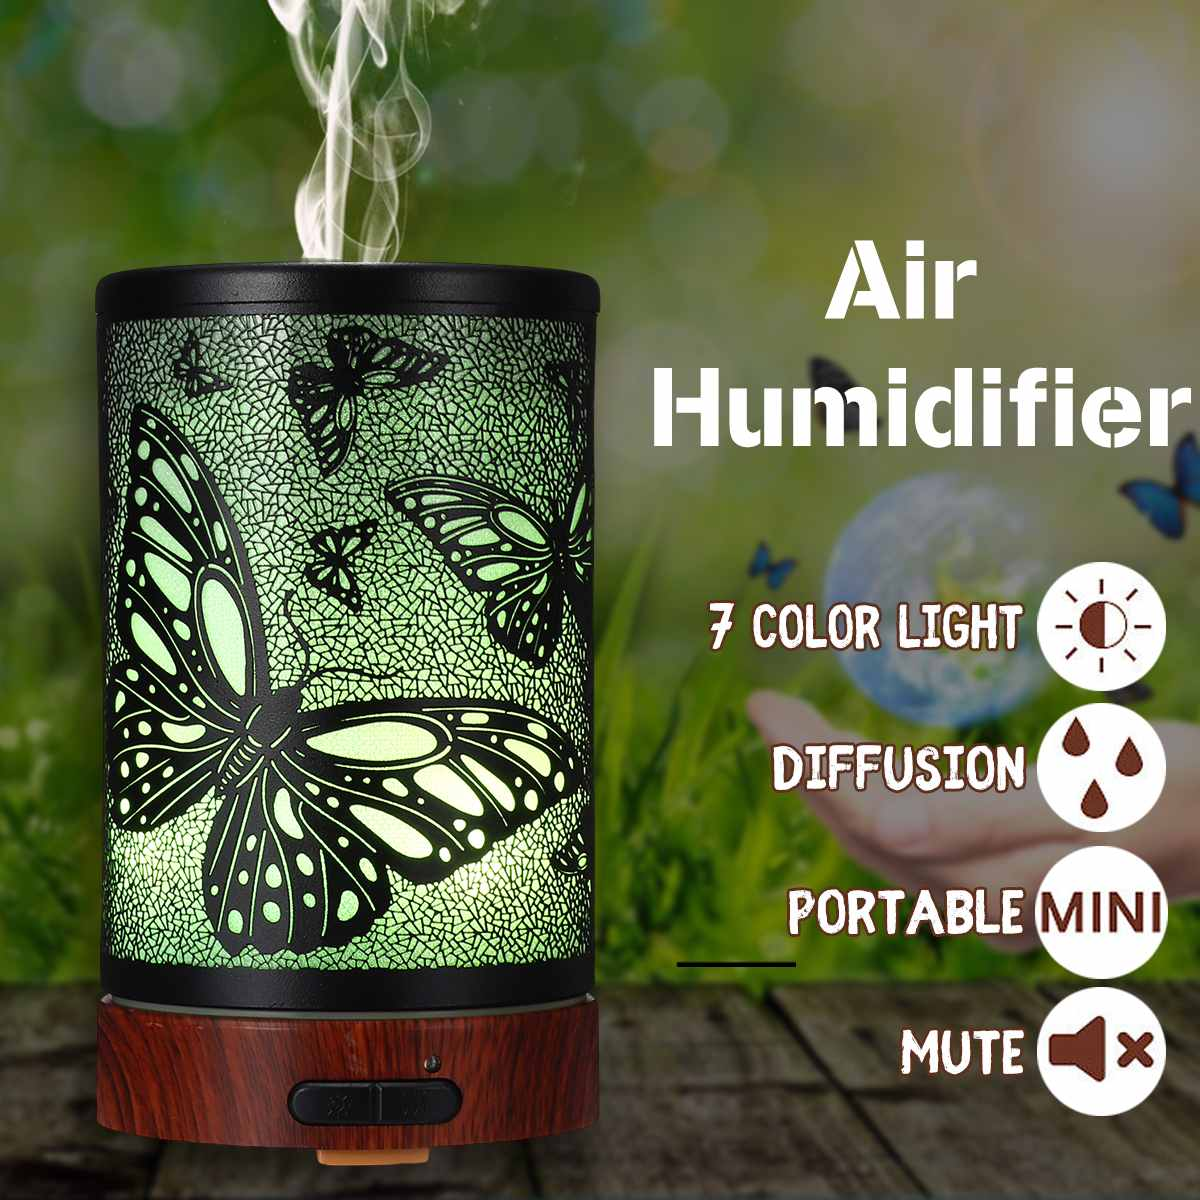 Butterfly Pattern Air Humidifier Essential Oil Diffuser Iron Art Humidificador Mist Maker LED Lamp Diffuser Aromatherapy US PlugButterfly Pattern Air Humidifier Essential Oil Diffuser Iron Art Humidificador Mist Maker LED Lamp Diffuser Aromatherapy US Plug